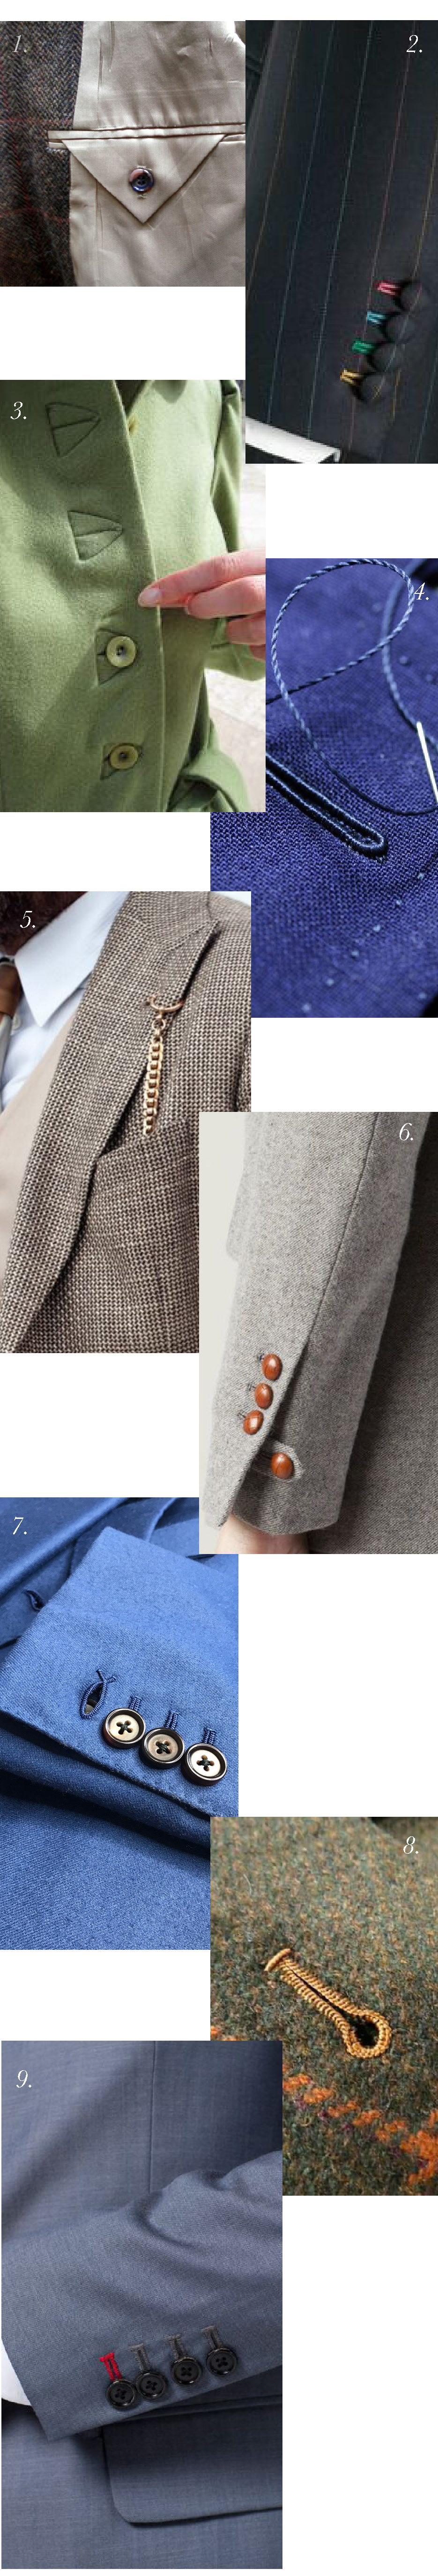 Bespoke Tailoring Details for the Jasika Blazer // Closet Case Patterns